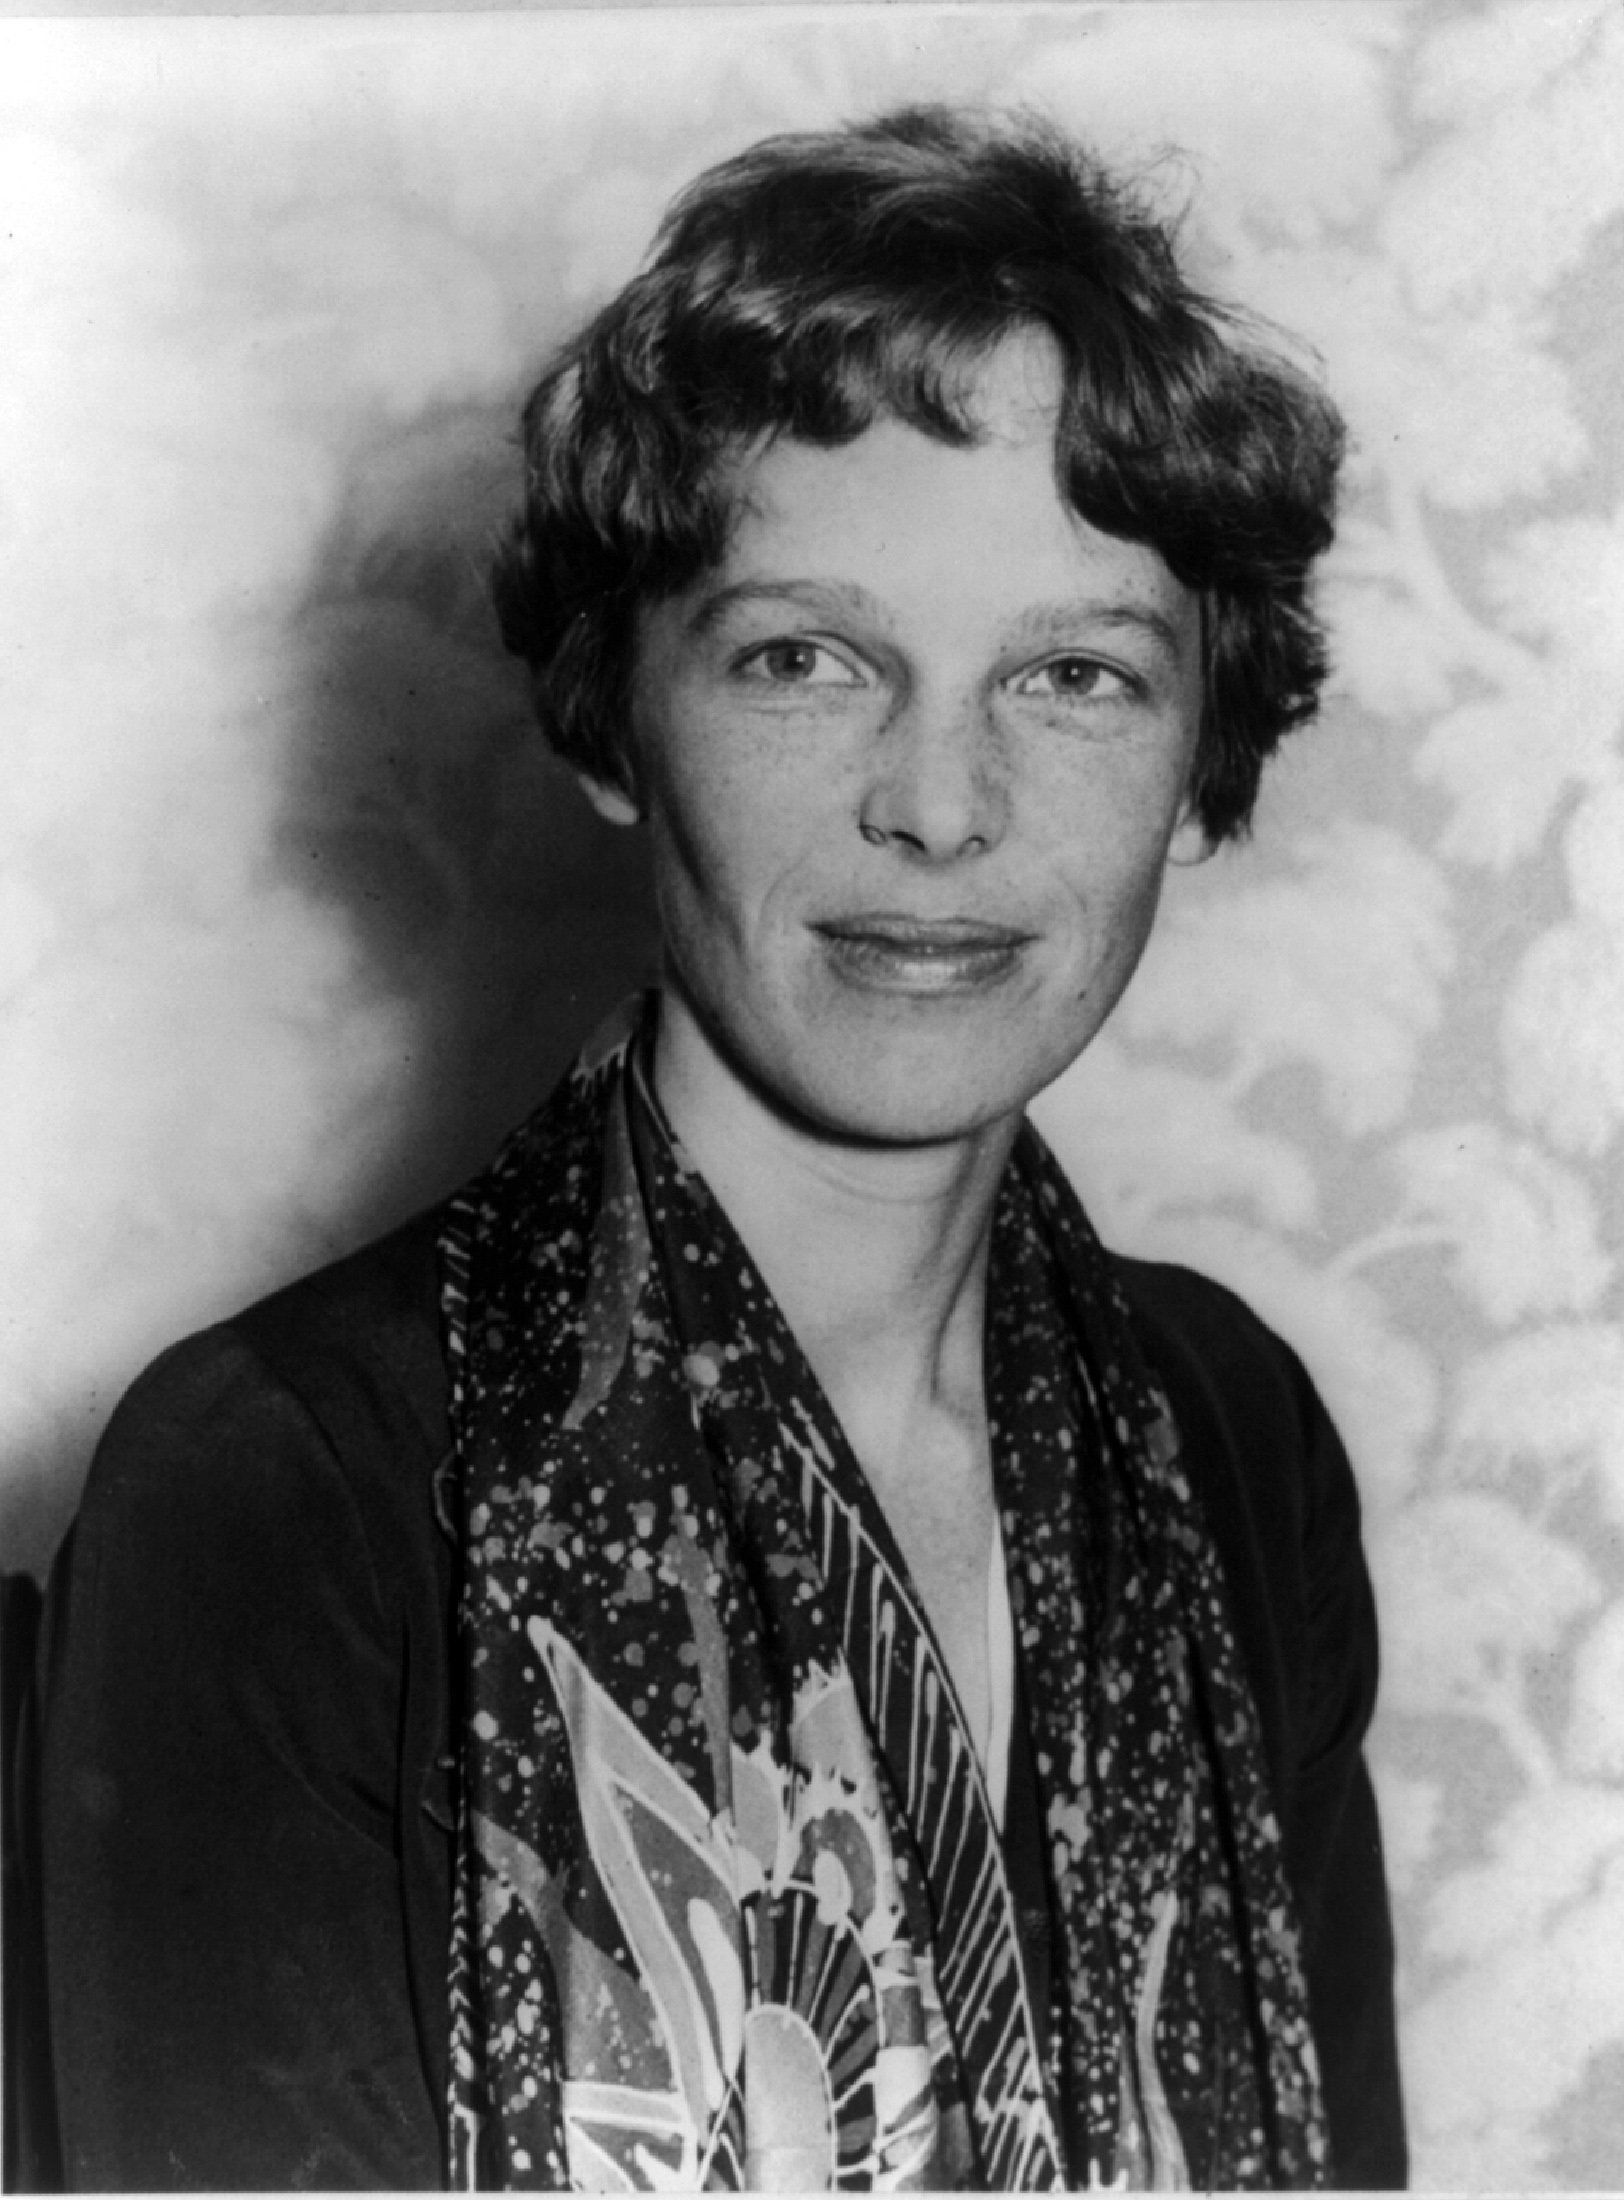 Renowned U.S. pilot Amelia Earhart is pictured in this 1928 photograph released on March 20, 2012. Scientists on March 20, 2012 announced a new search to resolve the disappearance of Earhart, saying fresh evidence from a remote Pacific island may reveal the fate of Earhart, who vanished in 1937 while attempting to circle the globe. REUTERS/Library of Congress/Handout (UNITED STATES - Tags: TRANSPORT SOCIETY HEADSHOT) FOR EDITORIAL USE ONLY. NOT FOR SALE FOR MARKETING OR ADVERTISING CAMPAIGNS. THIS IMAGE HAS BEEN SUPPLIED BY A THIRD PARTY. IT IS DISTRIBUTED, EXACTLY AS RECEIVED BY REUTERS, AS A SERVICE TO CLIENTS